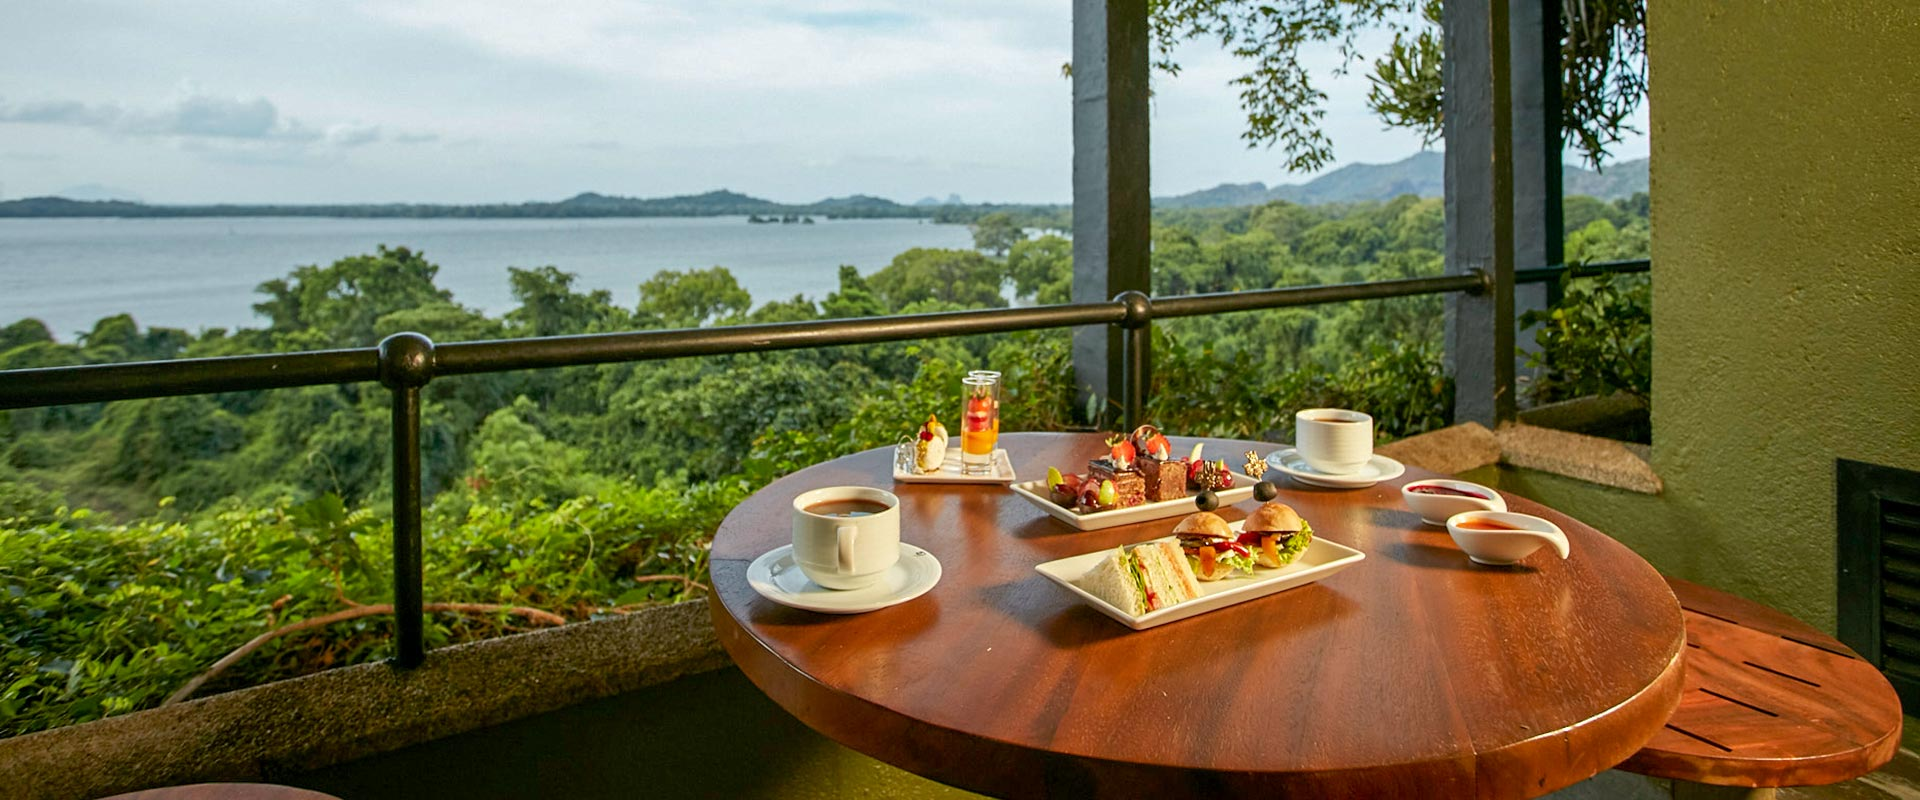 Deluxe Balcony view with snacks at Heritance Kandalama